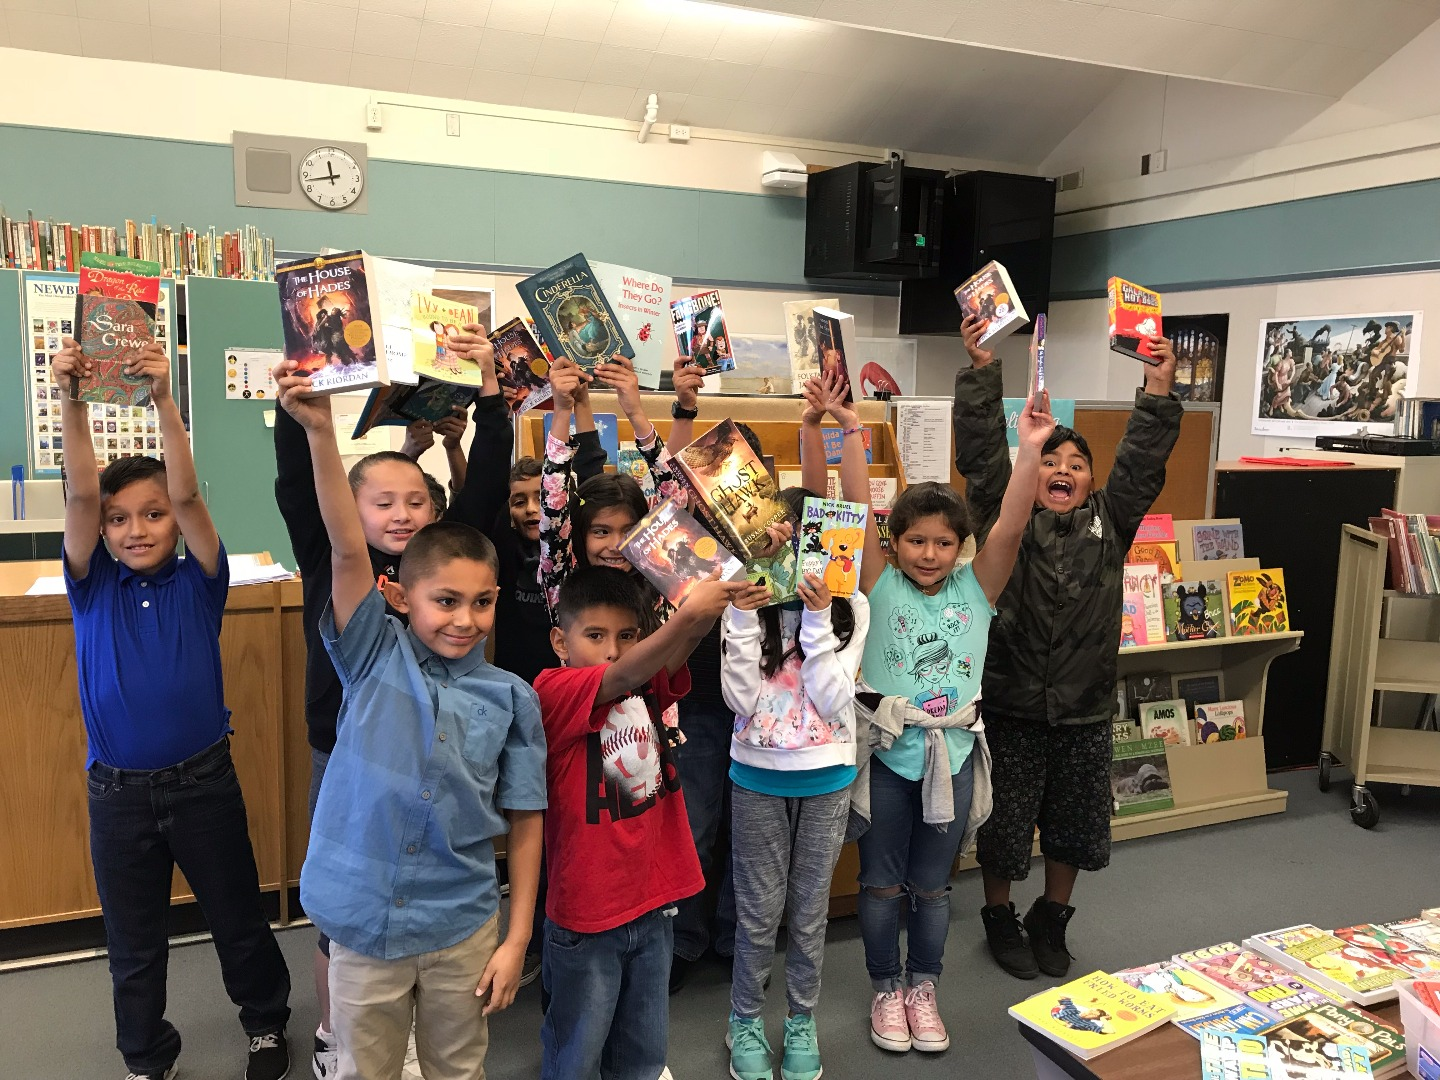 Freedom students with books